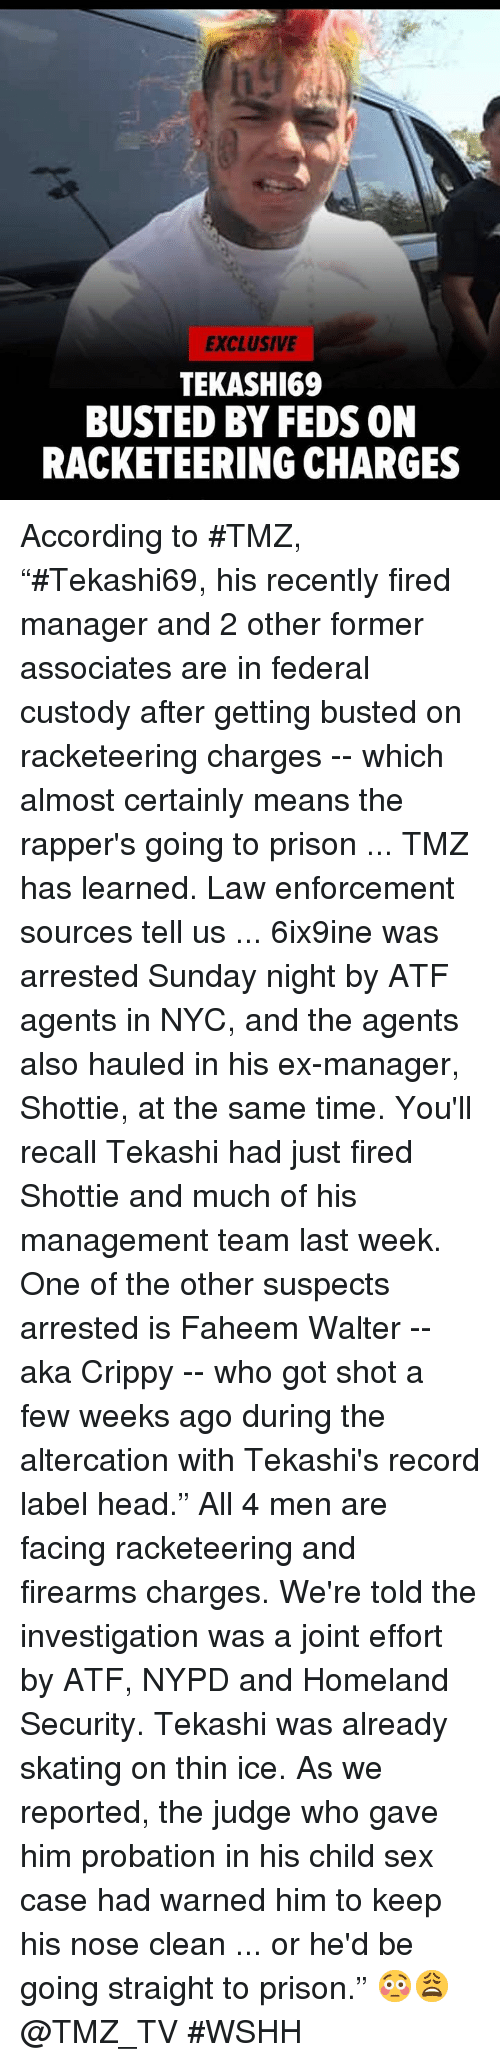 "Head, Sex, and Wshh: EXCLUSIVE  TEKASHI69  BUSTED BY FEDS ON  RACKETEERING CHARGES According to #TMZ, ""#Tekashi69, his recently fired manager and 2 other former associates are in federal custody after getting busted on racketeering charges -- which almost certainly means the rapper's going to prison ... TMZ has learned.  Law enforcement sources tell us ... 6ix9ine was arrested Sunday night by ATF agents in NYC, and the agents also hauled in his ex-manager, Shottie, at the same time. You'll recall Tekashi had just fired Shottie and much of his management team last week.  One of the other suspects arrested is Faheem Walter -- aka Crippy -- who got shot a few weeks ago during the altercation with Tekashi's record label head."" All 4 men are facing racketeering and firearms charges. We're told the investigation was a joint effort by ATF, NYPD and Homeland Security.  Tekashi was already skating on thin ice. As we reported, the judge who gave him probation in his child sex case had warned him to keep his nose clean ... or he'd be going straight to prison."" 😳😩 @TMZ_TV #WSHH"